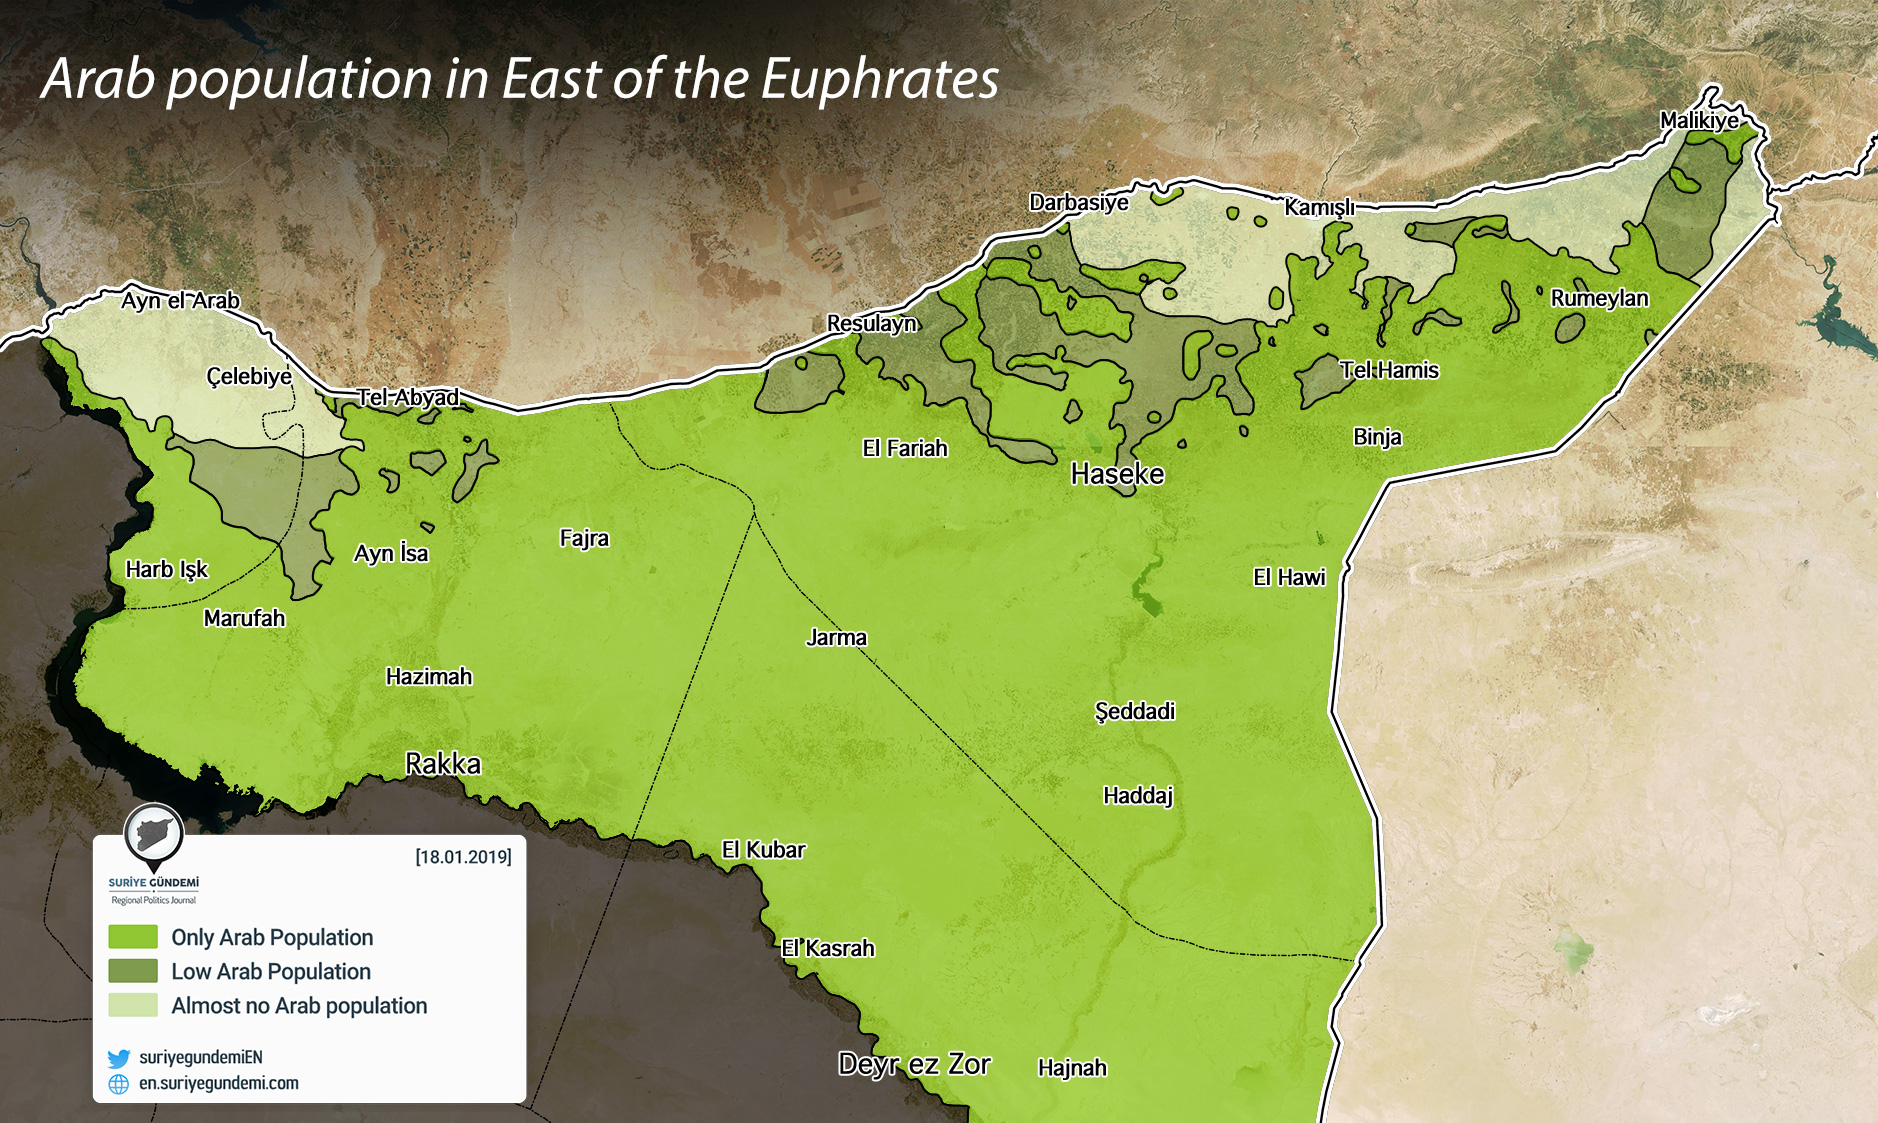 Arab Population in East of the Euphrates